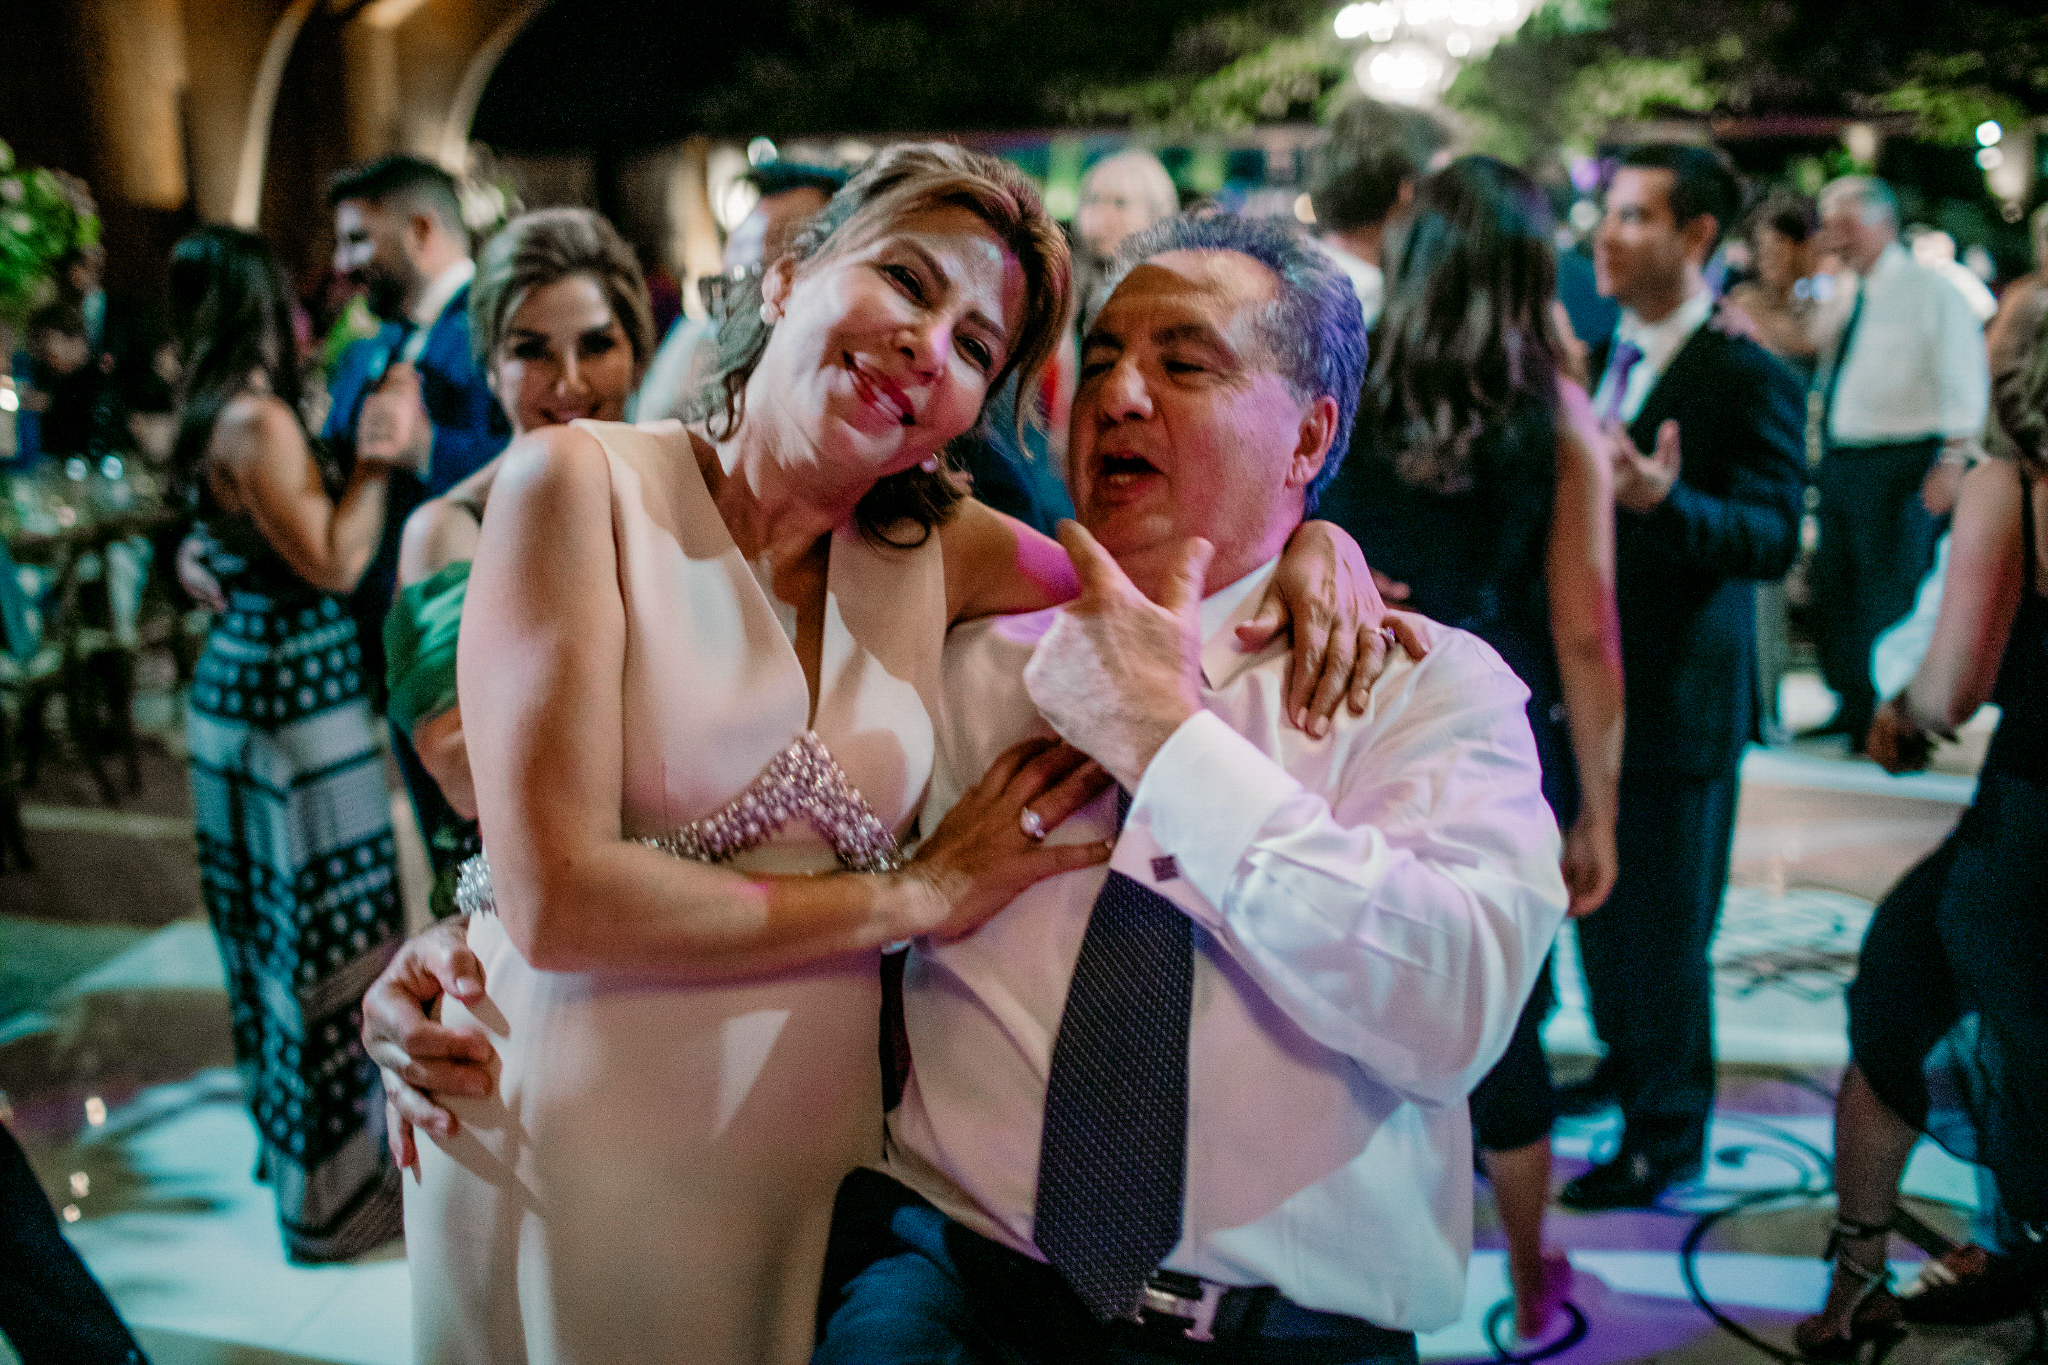 san diego wedding   photographer | middle aged couple dancing together with dancing crowd in   background